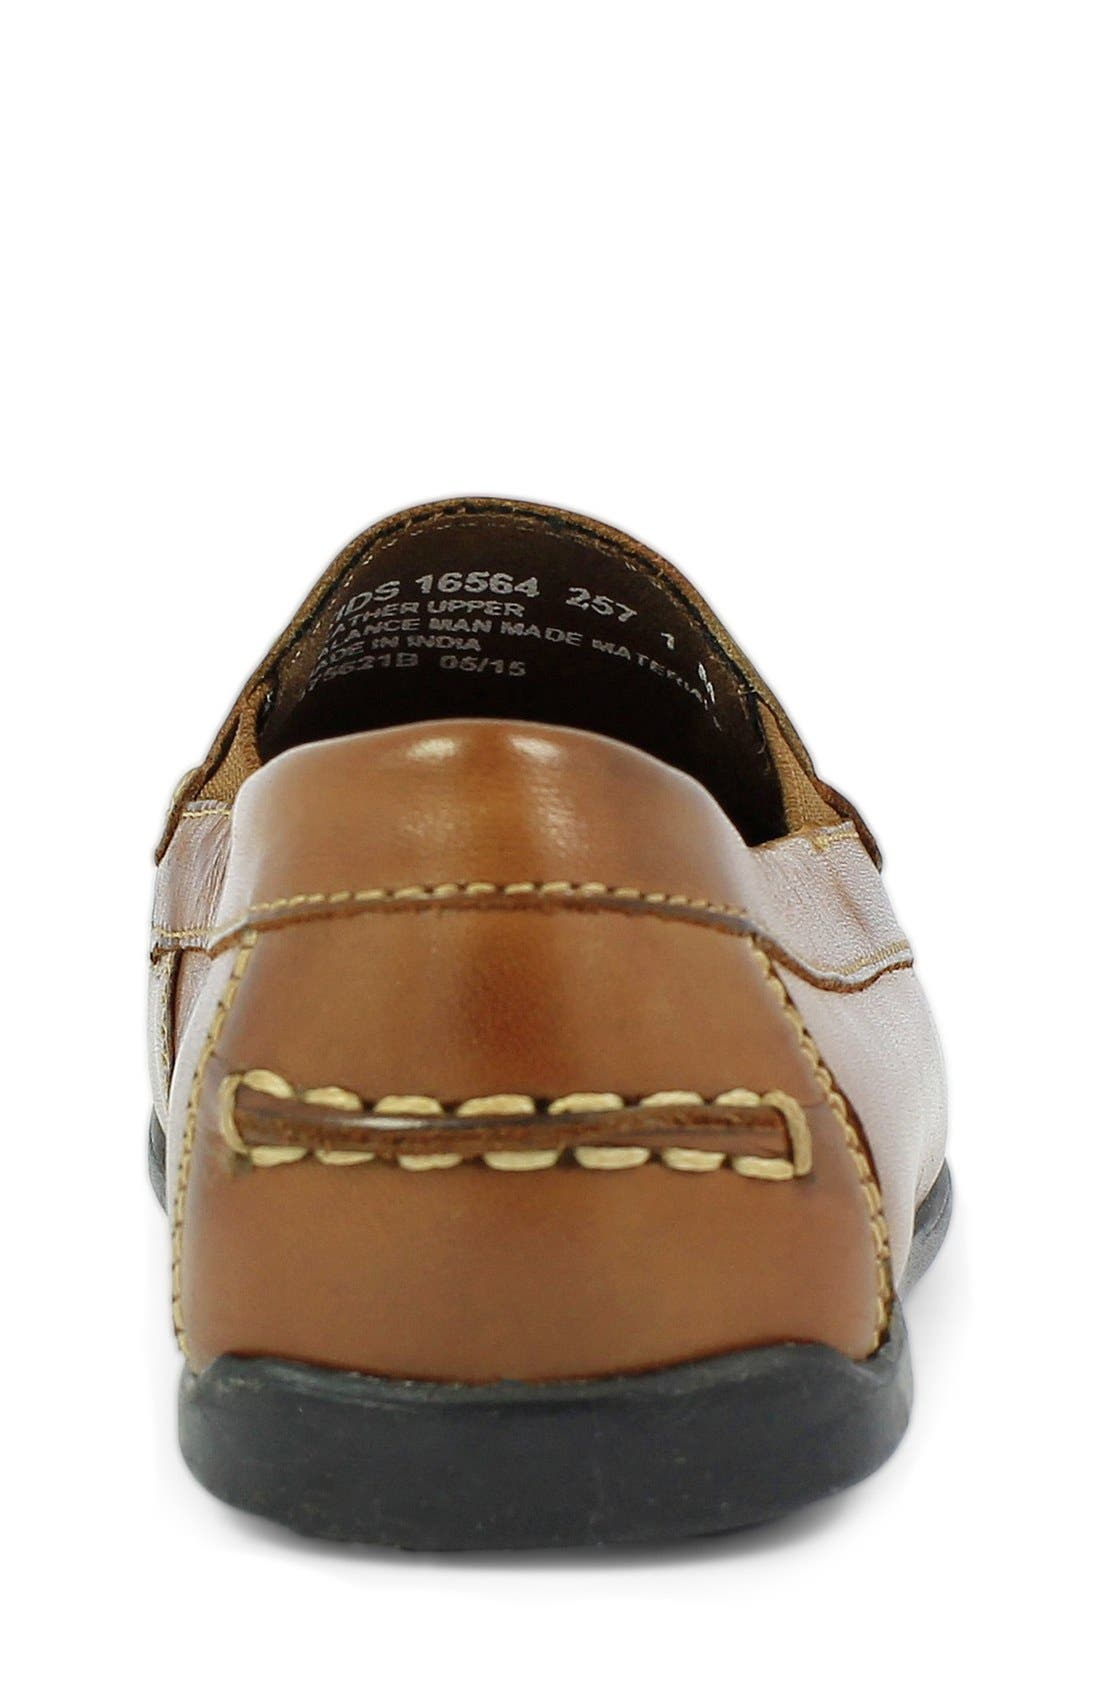 'Jasper - Venetian Jr.' Loafer,                             Alternate thumbnail 5, color,                             Saddle Tan Leather